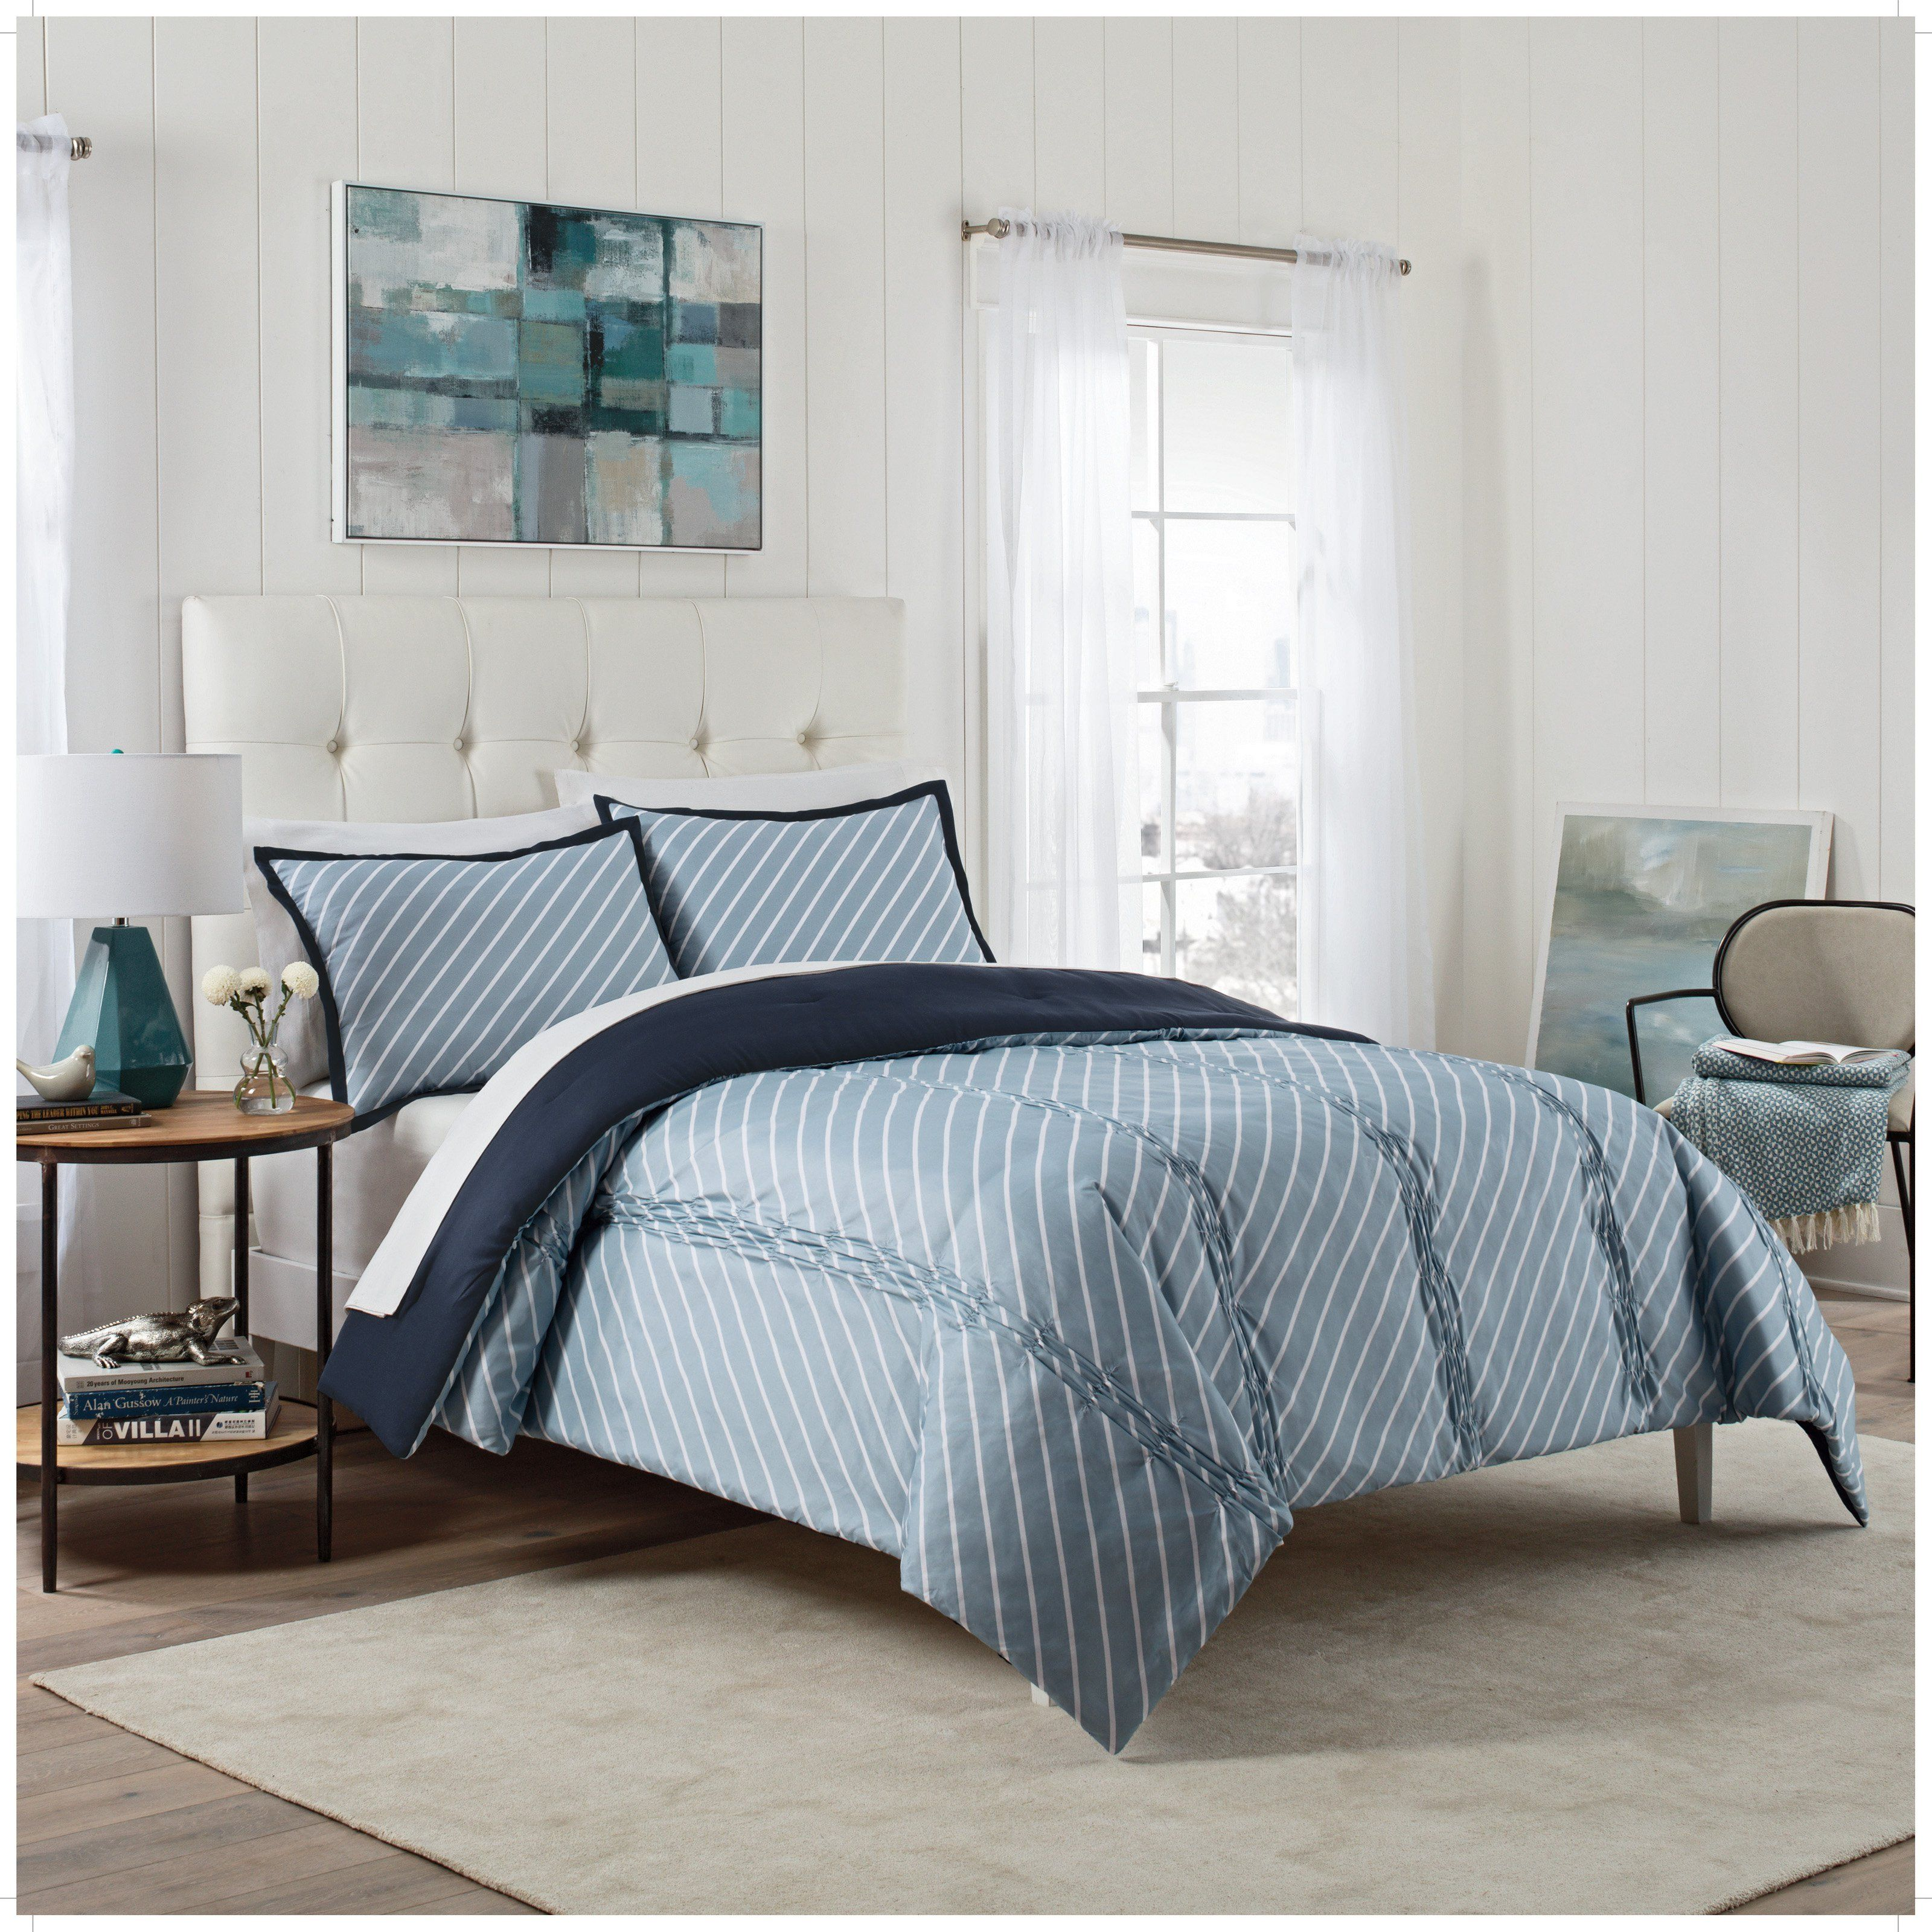 dolante upholstered number gray bedding queen contemporary by item design ashley in bed signature products